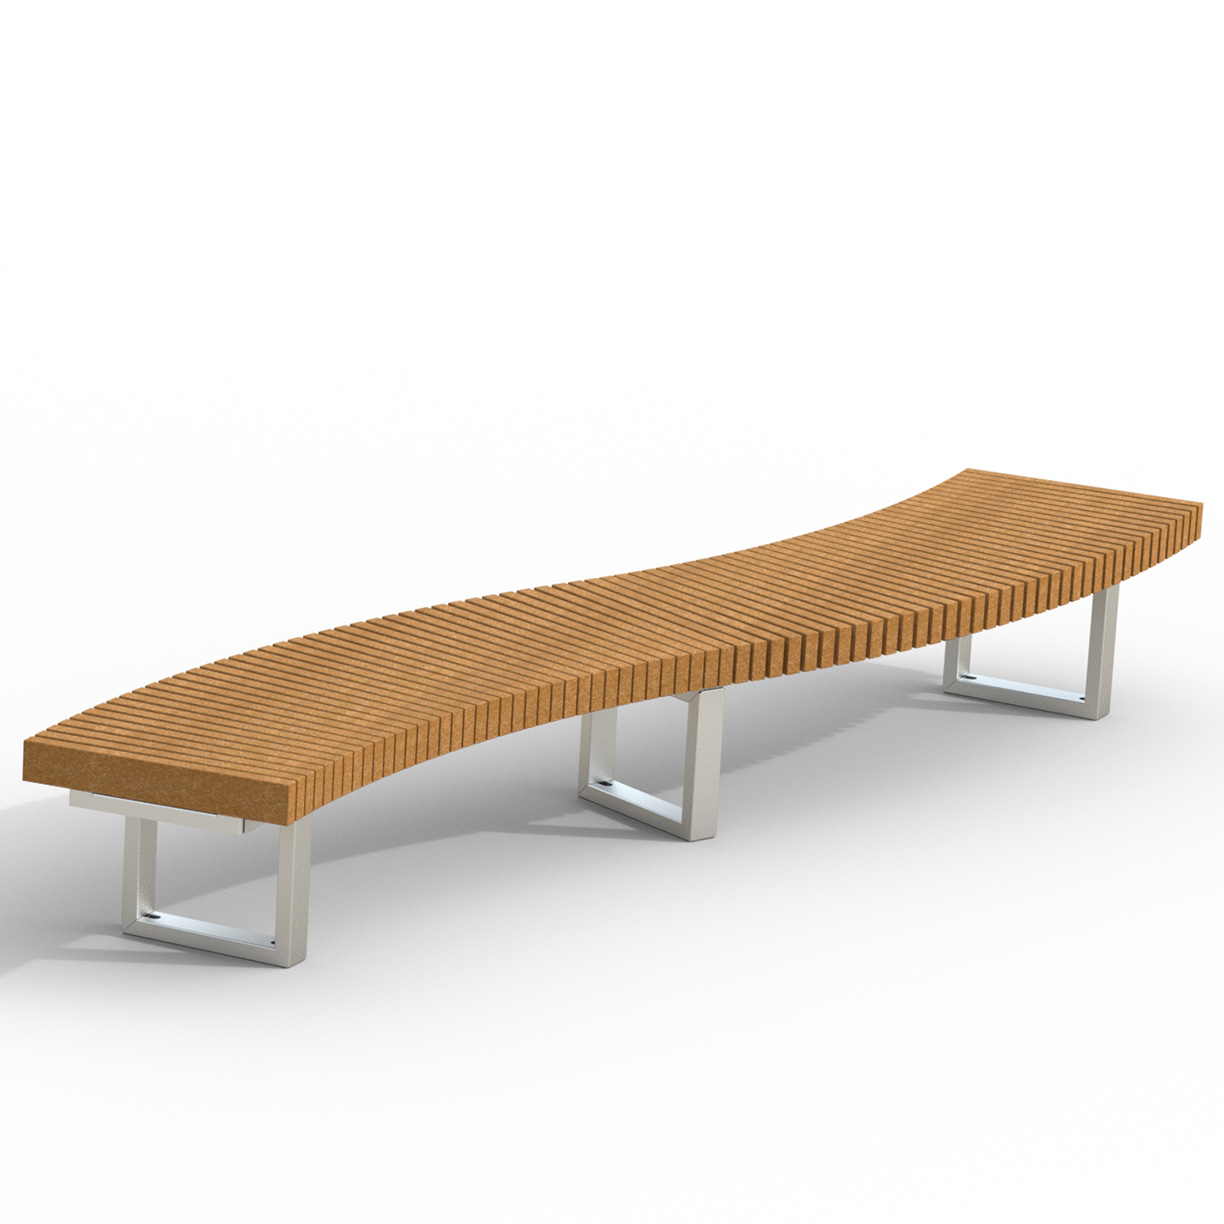 INF24S12X2R  Infinity Collection Alternating 30 Degree Serpentine Bench